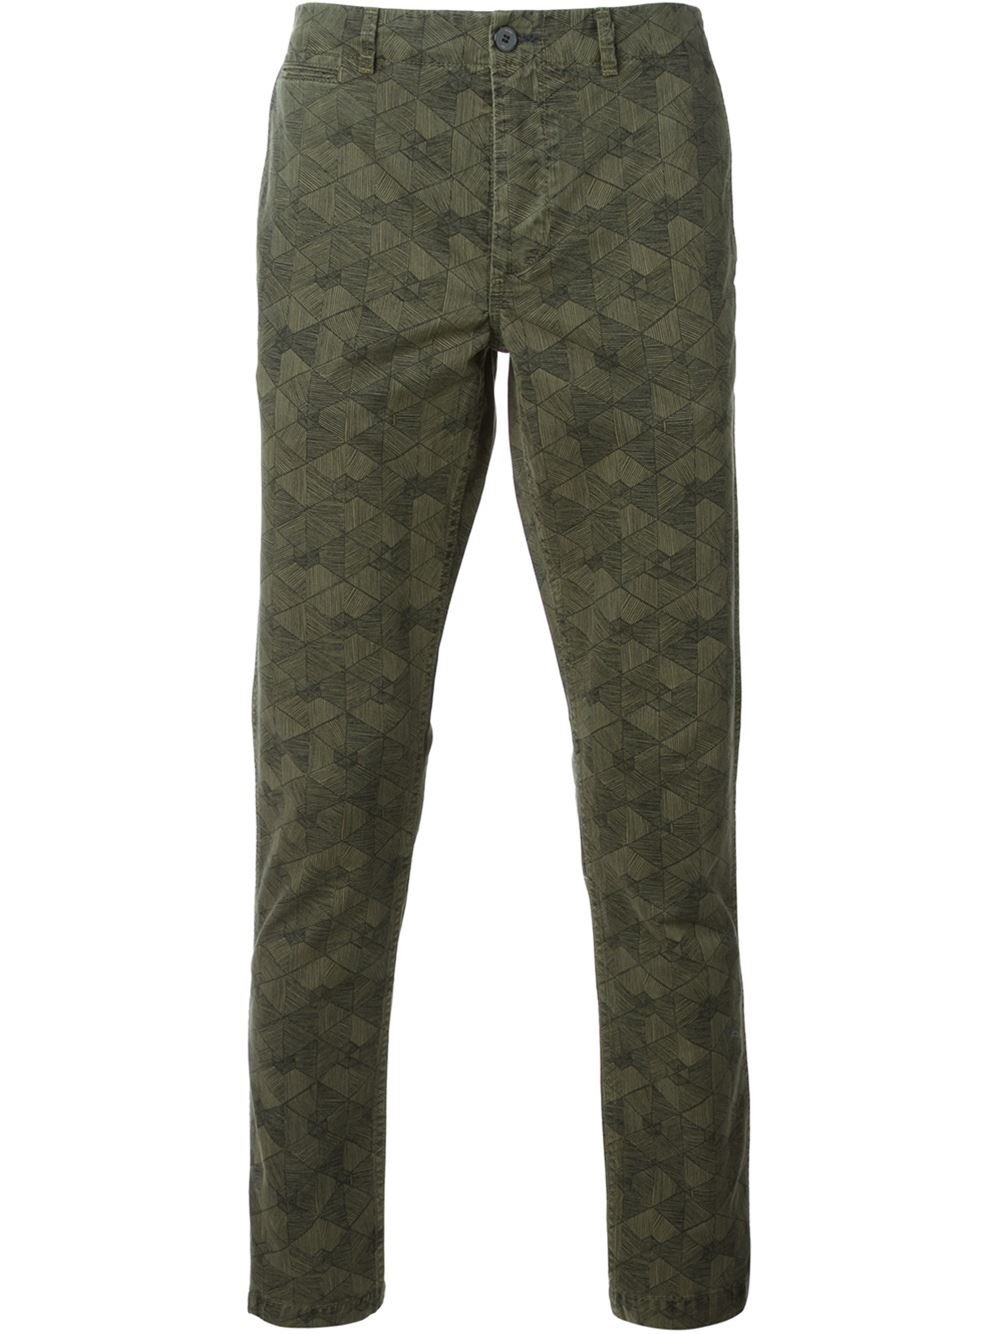 Paul Smith Geometric Print Chino Trousers in Green for Men